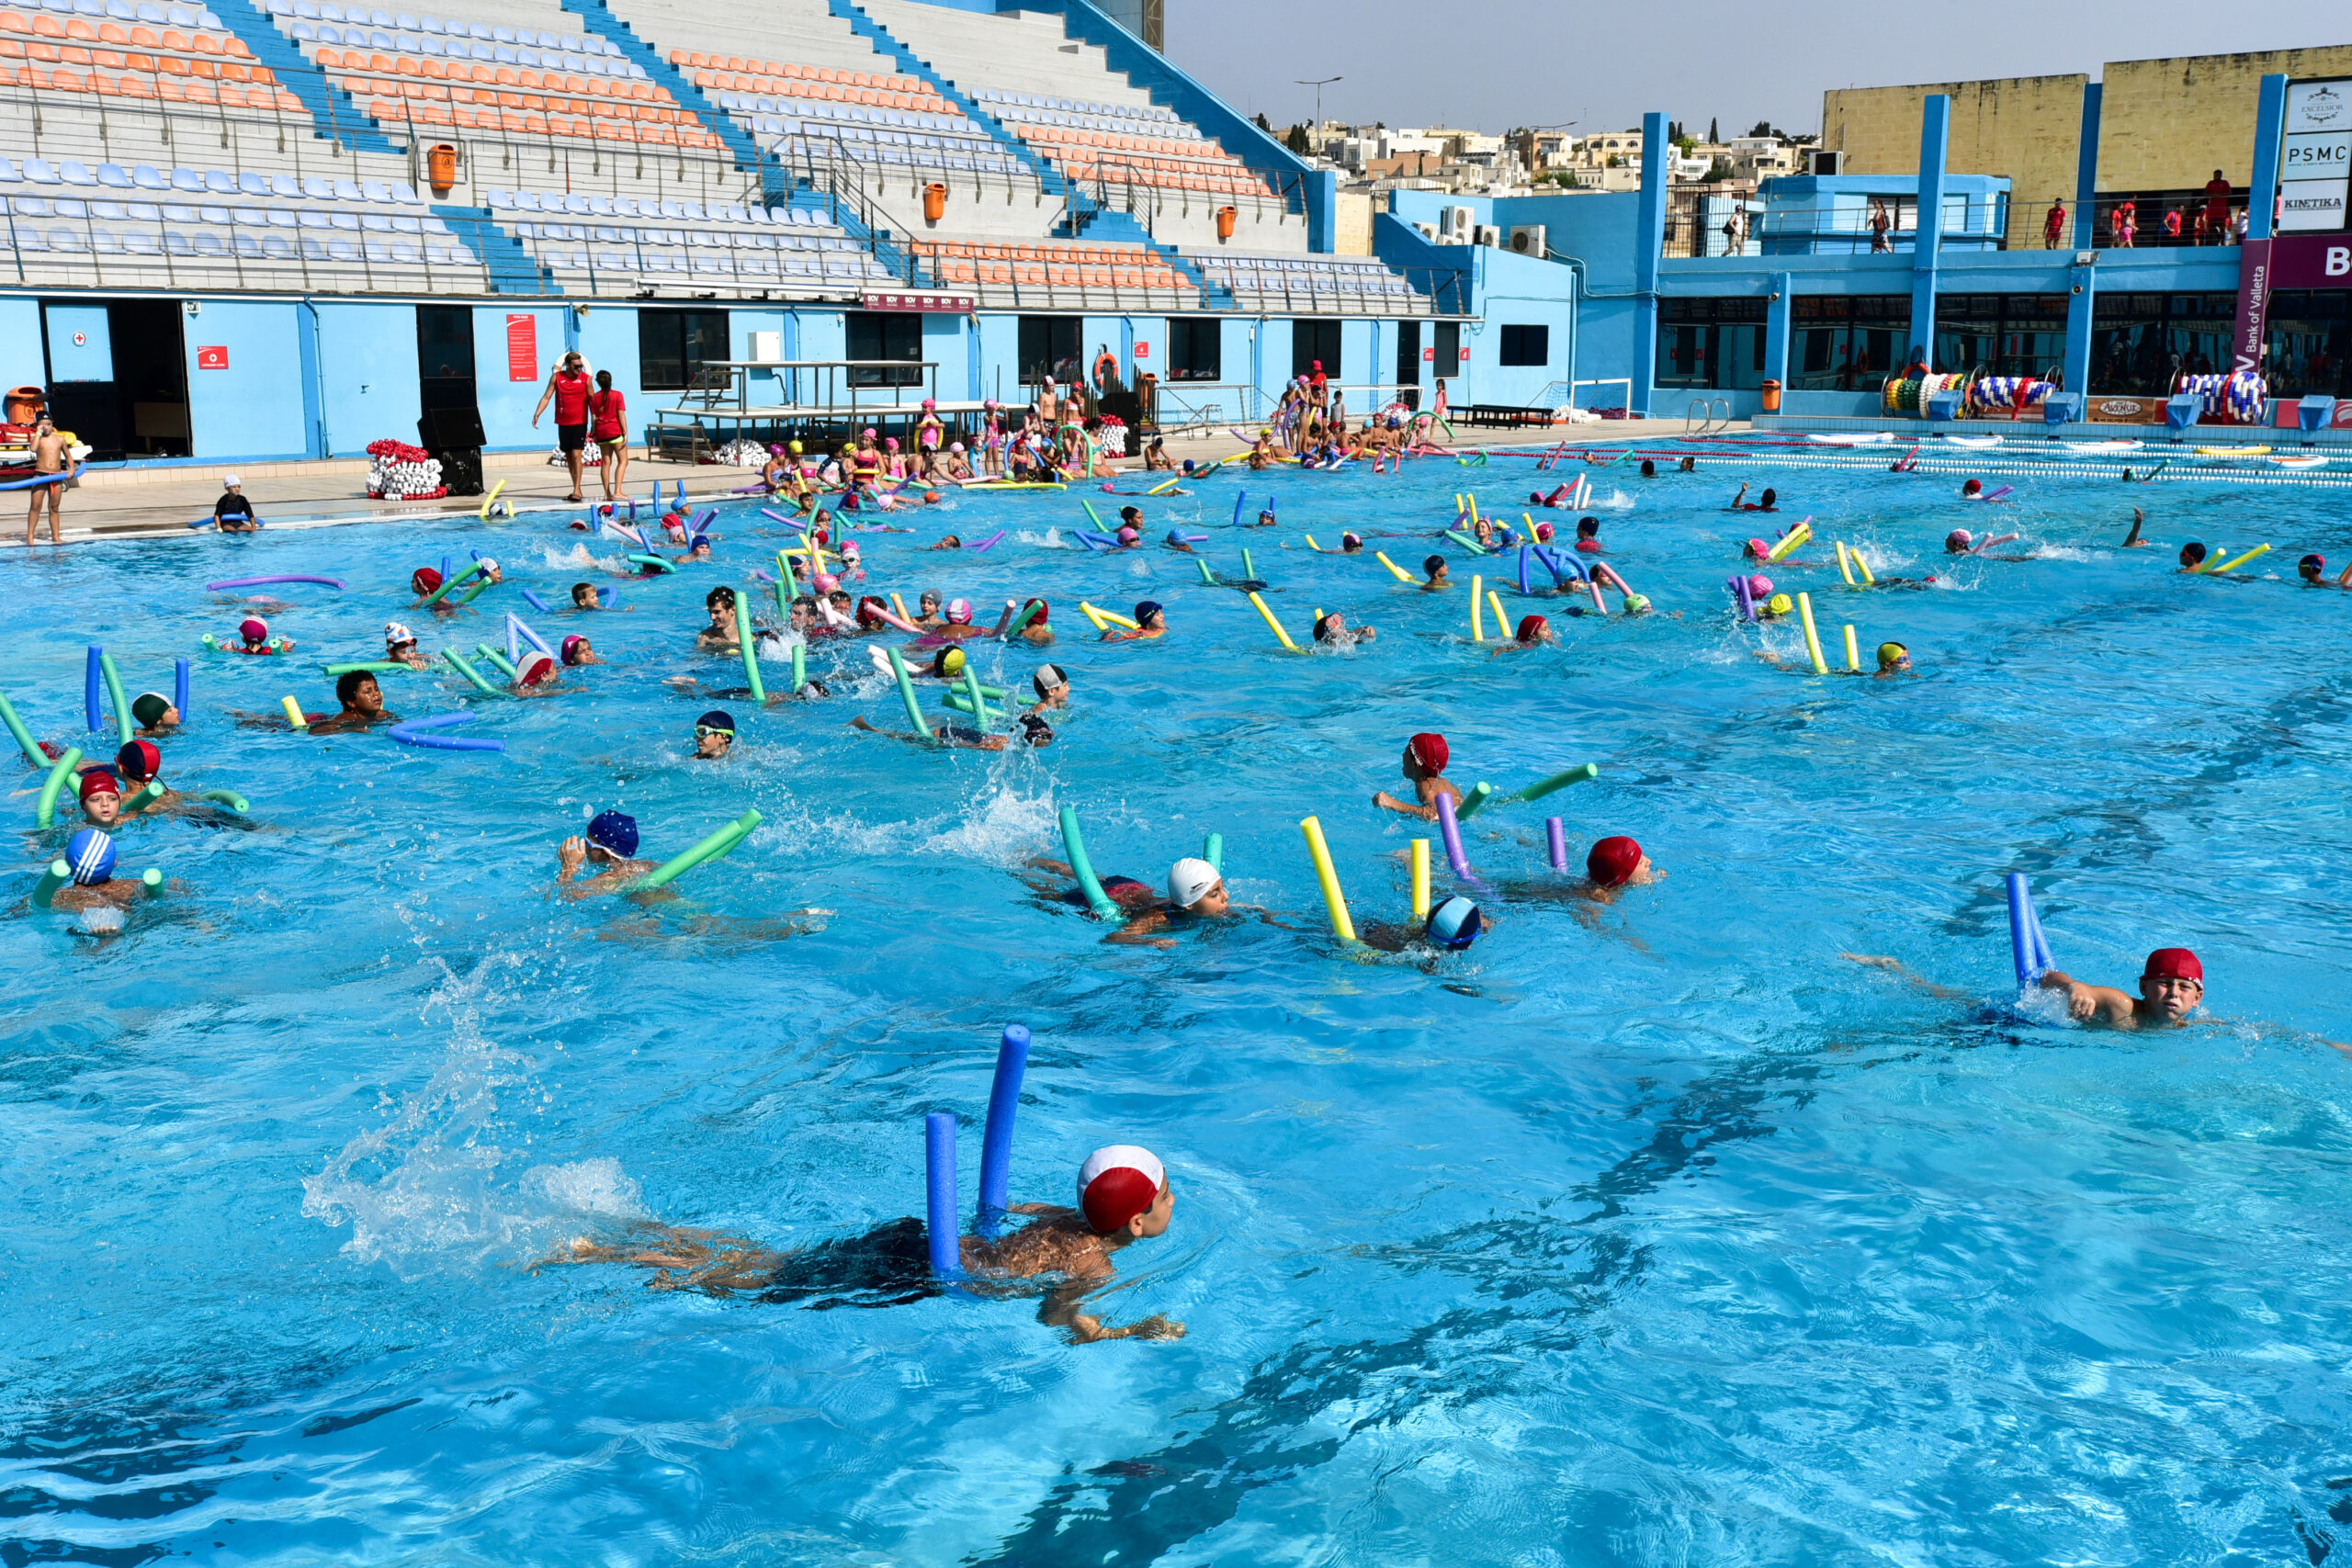 Children swimming activity at the National Pool Complex